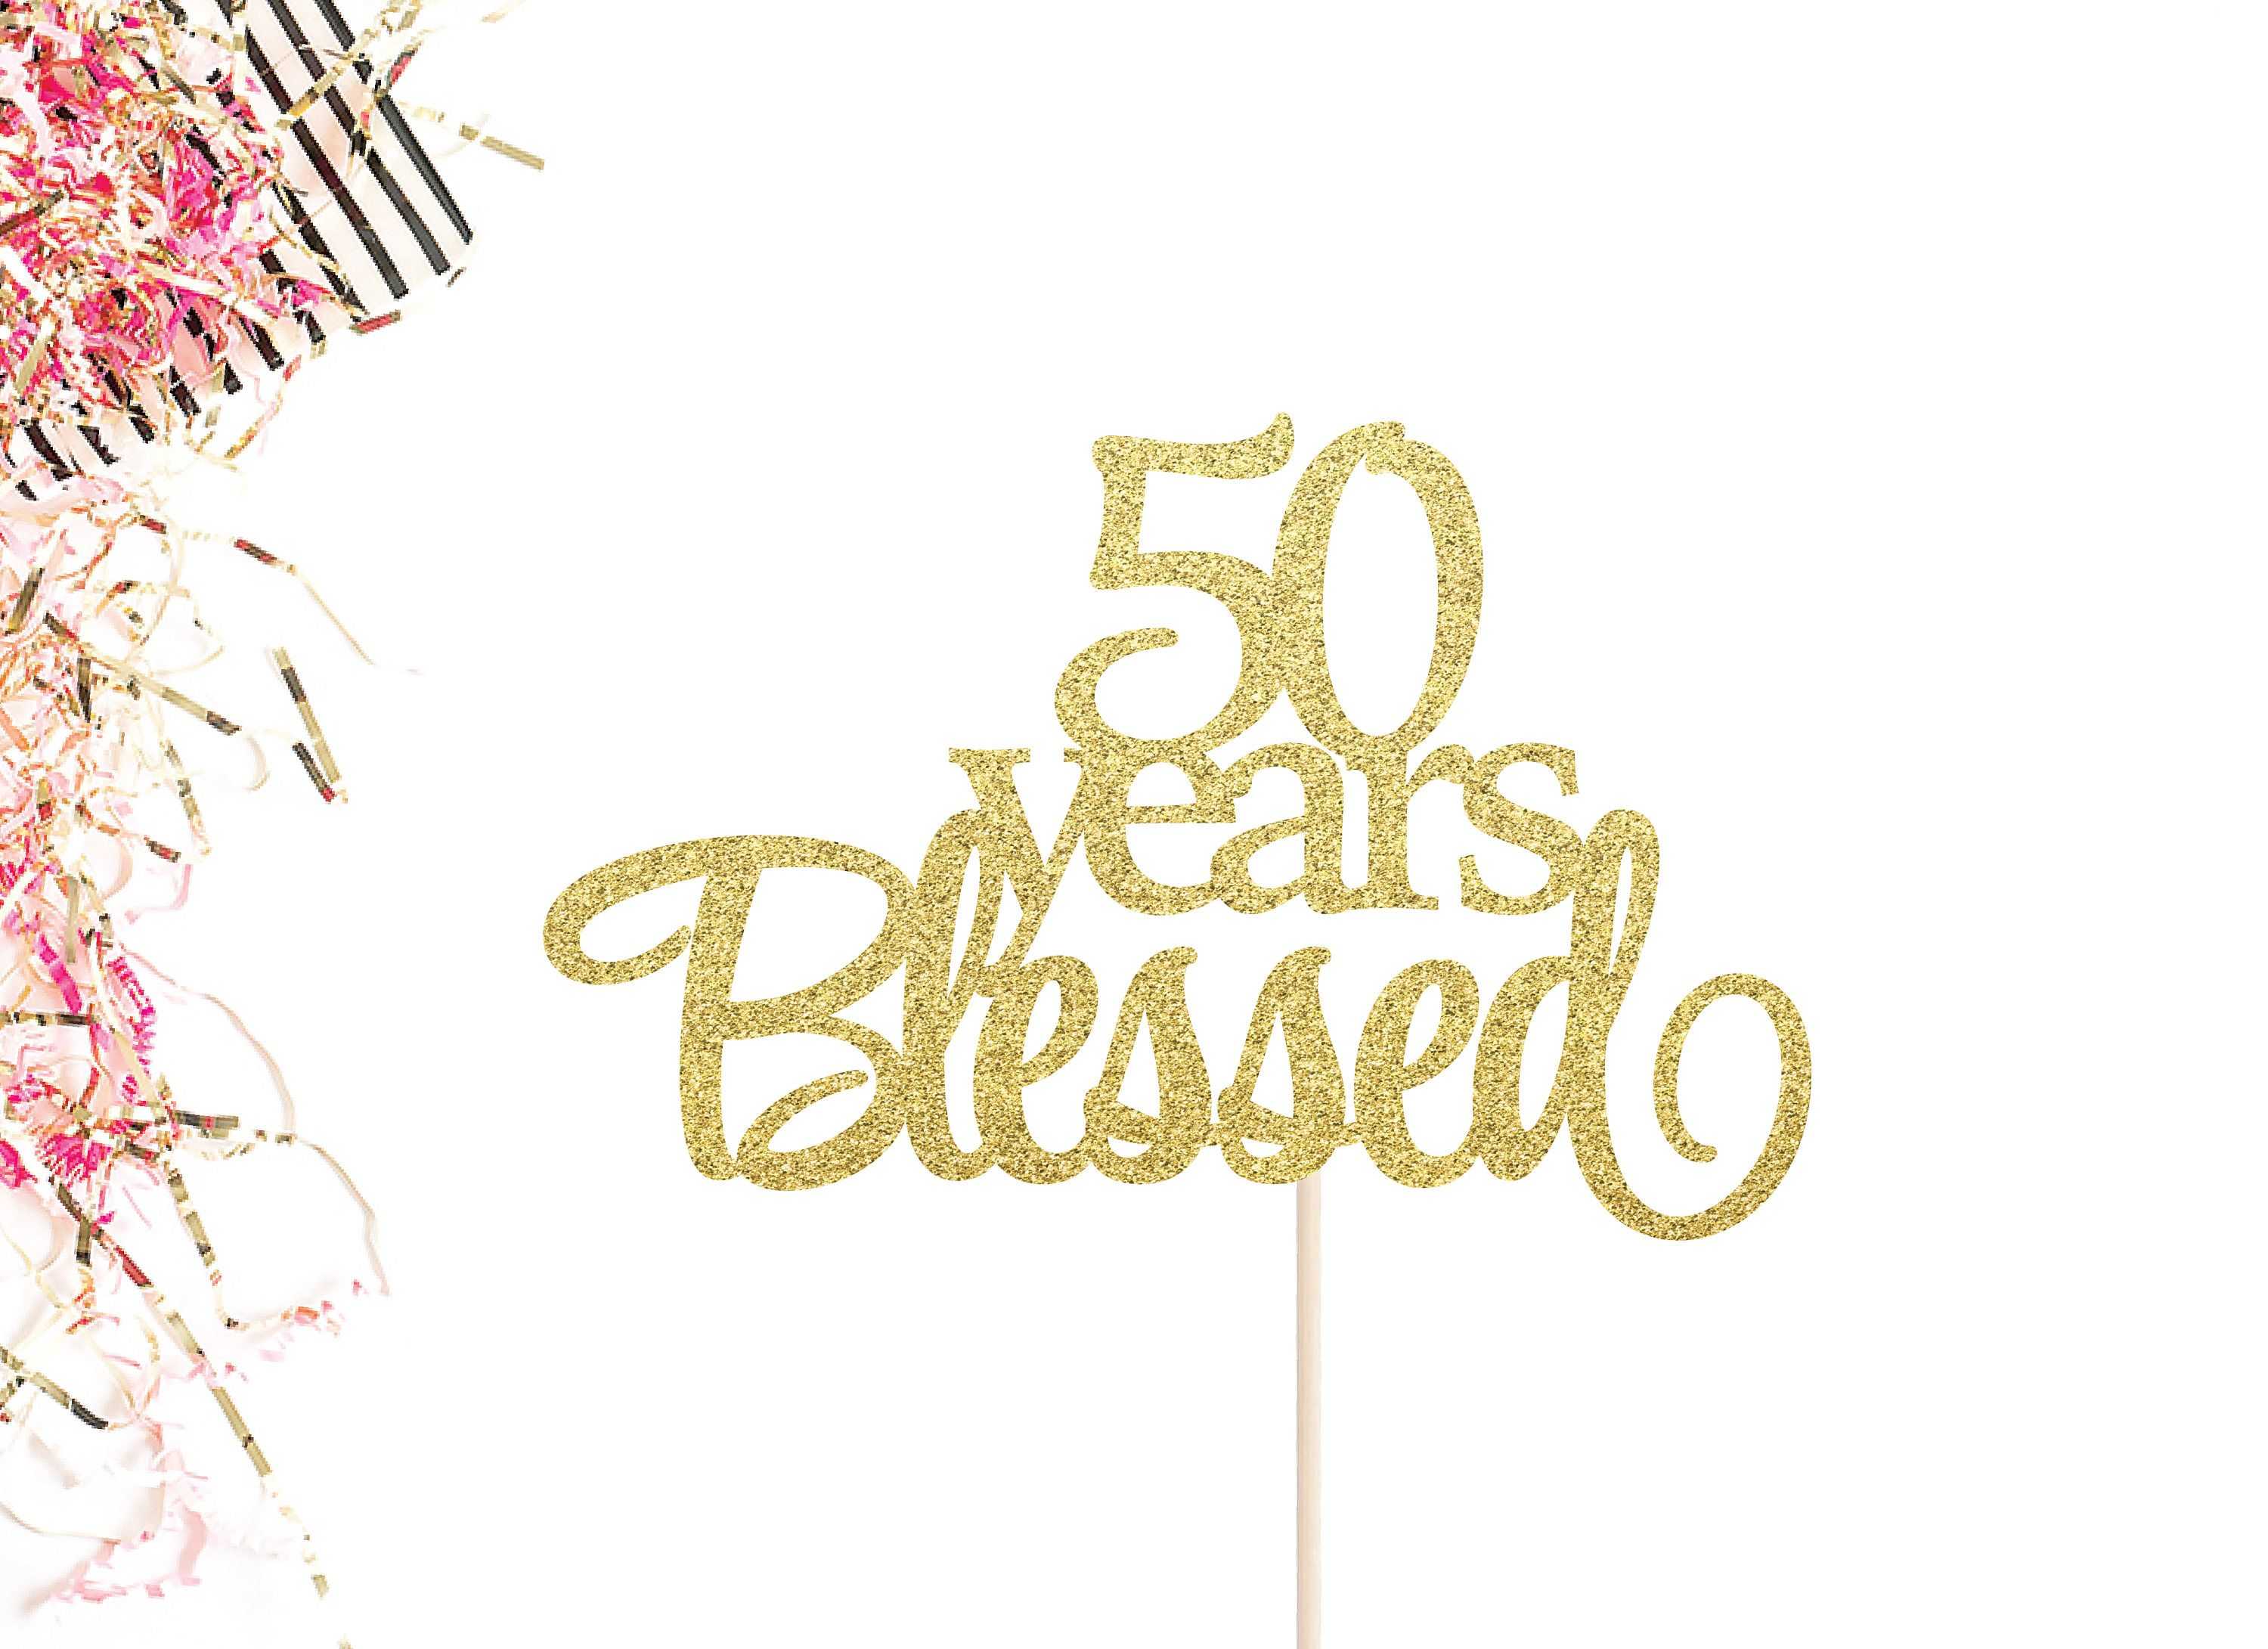 Pin By Christina Gallazzi On 50th Anniversary In 2019